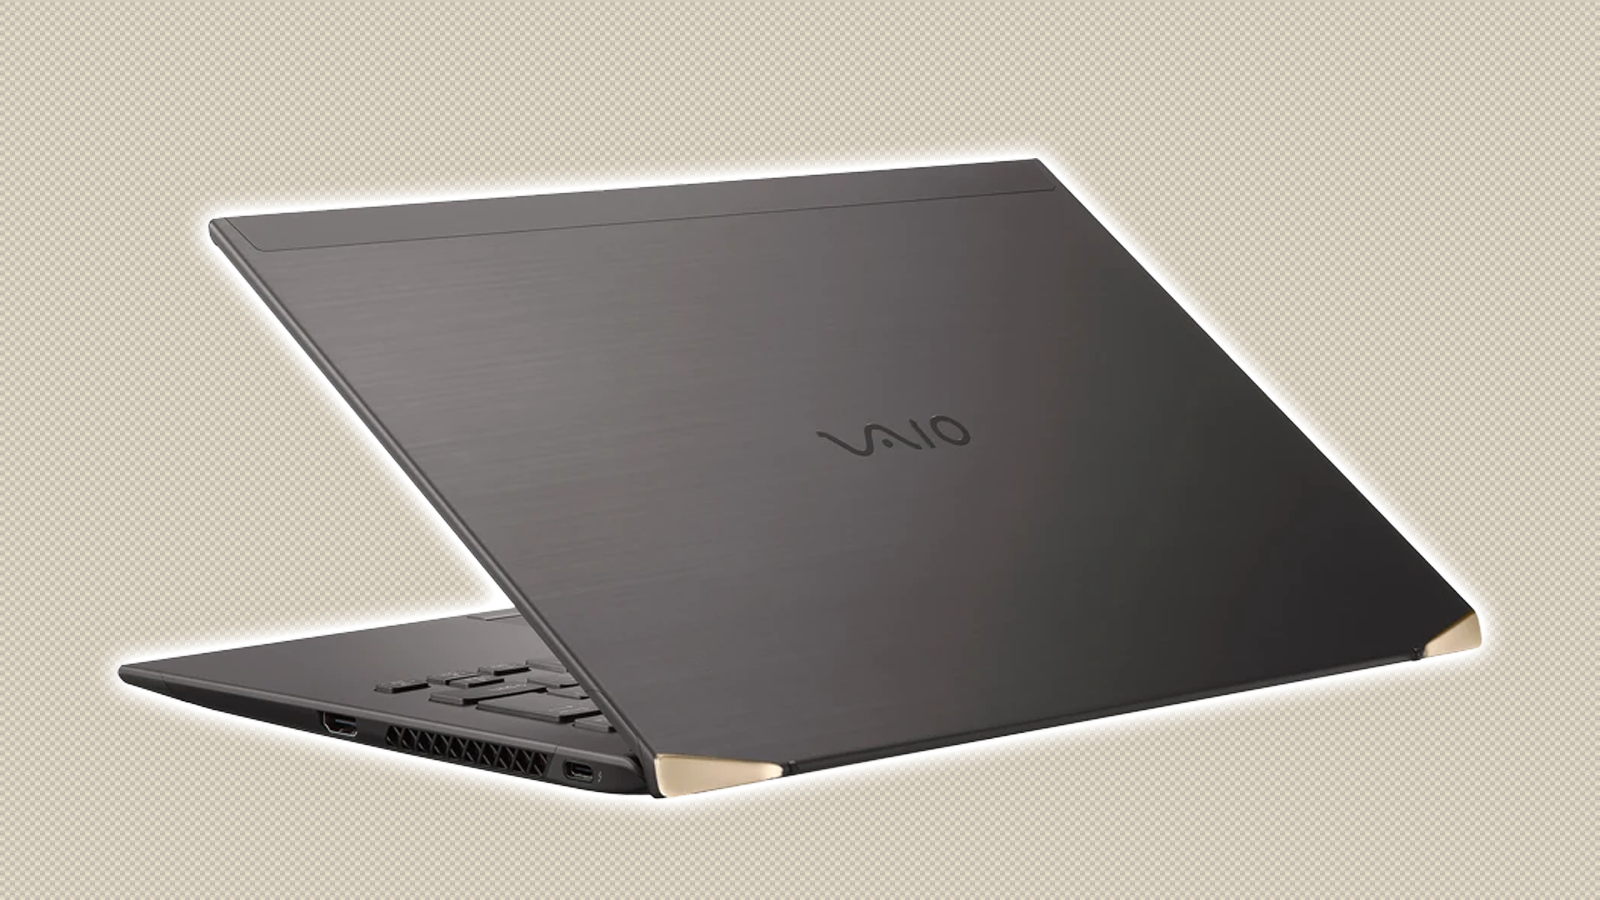 VAIO Marks Its Comeback With a $3,579 Full Carbon Fiber Laptop thumbnail